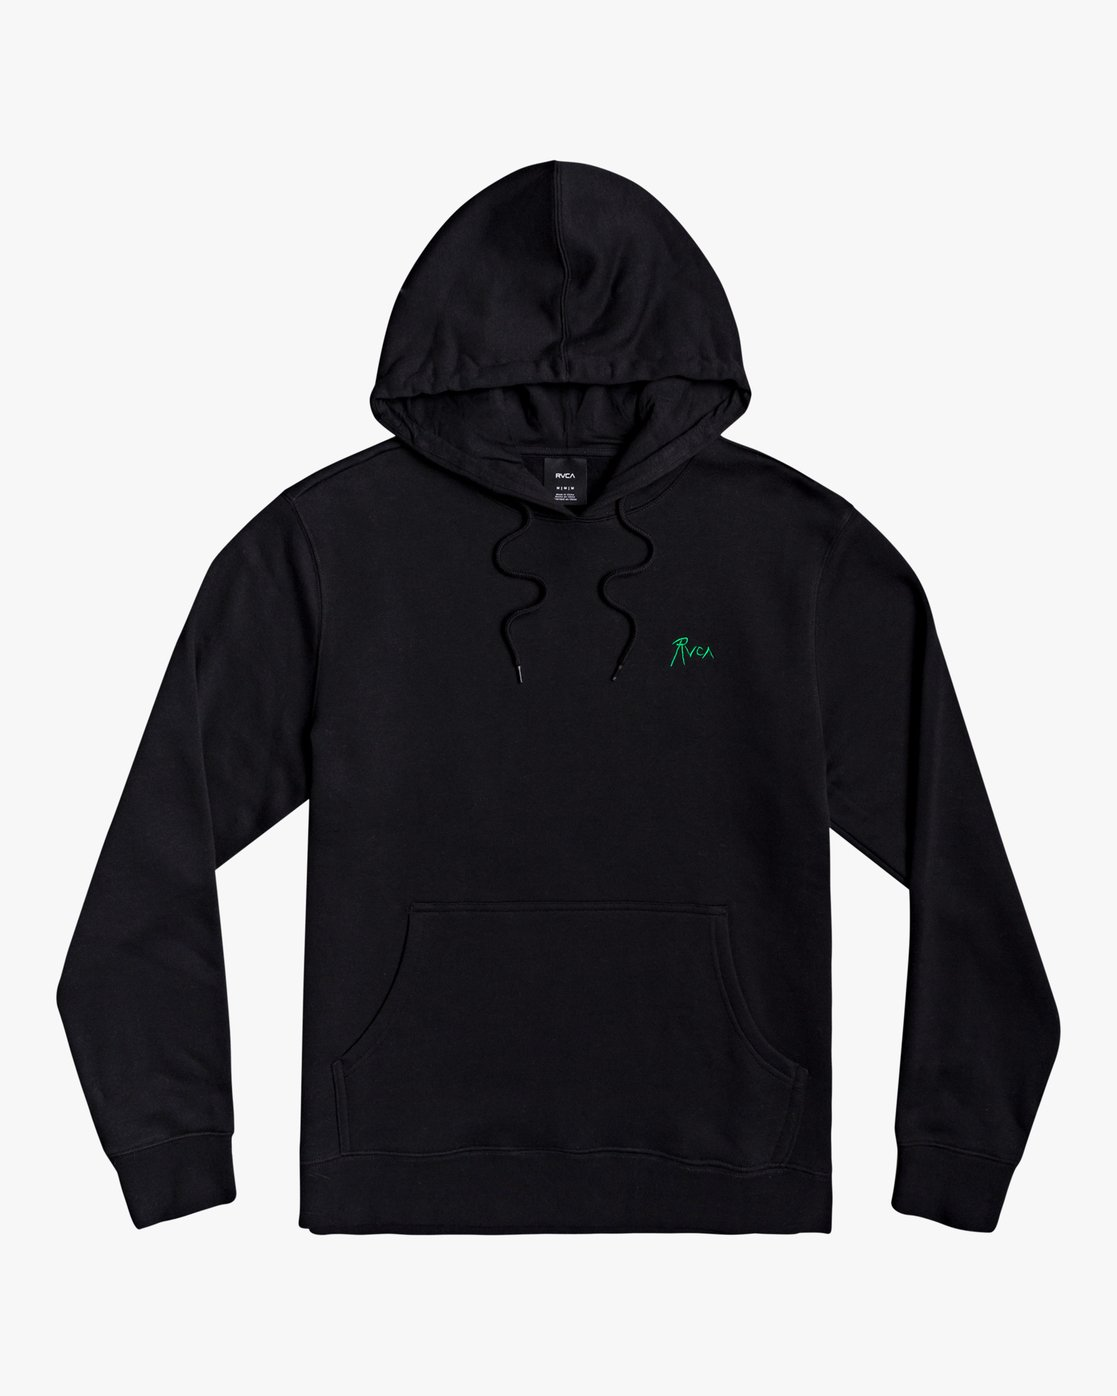 1 Stacey Rozich The Gorgeous Hussy - Hoodie for Men Black U1HORCRVF0 RVCA